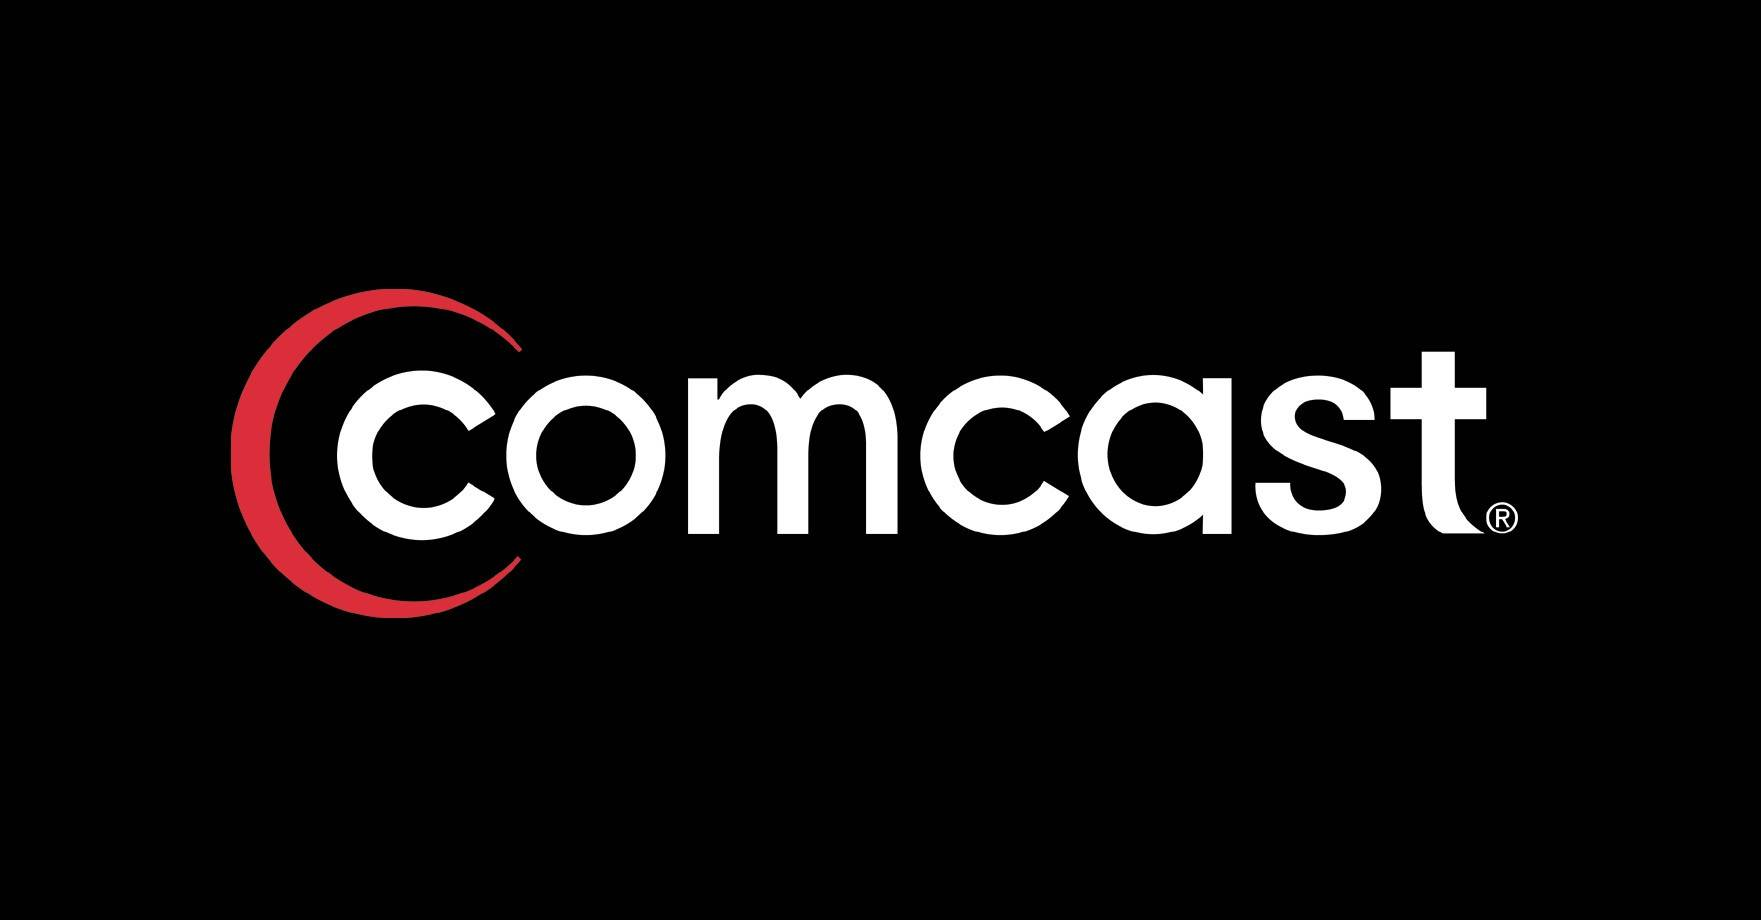 Comcast Corp. said it now expects its planned $45.2 billion acquisition of Time Warner Cable Inc. to be completed early next year.